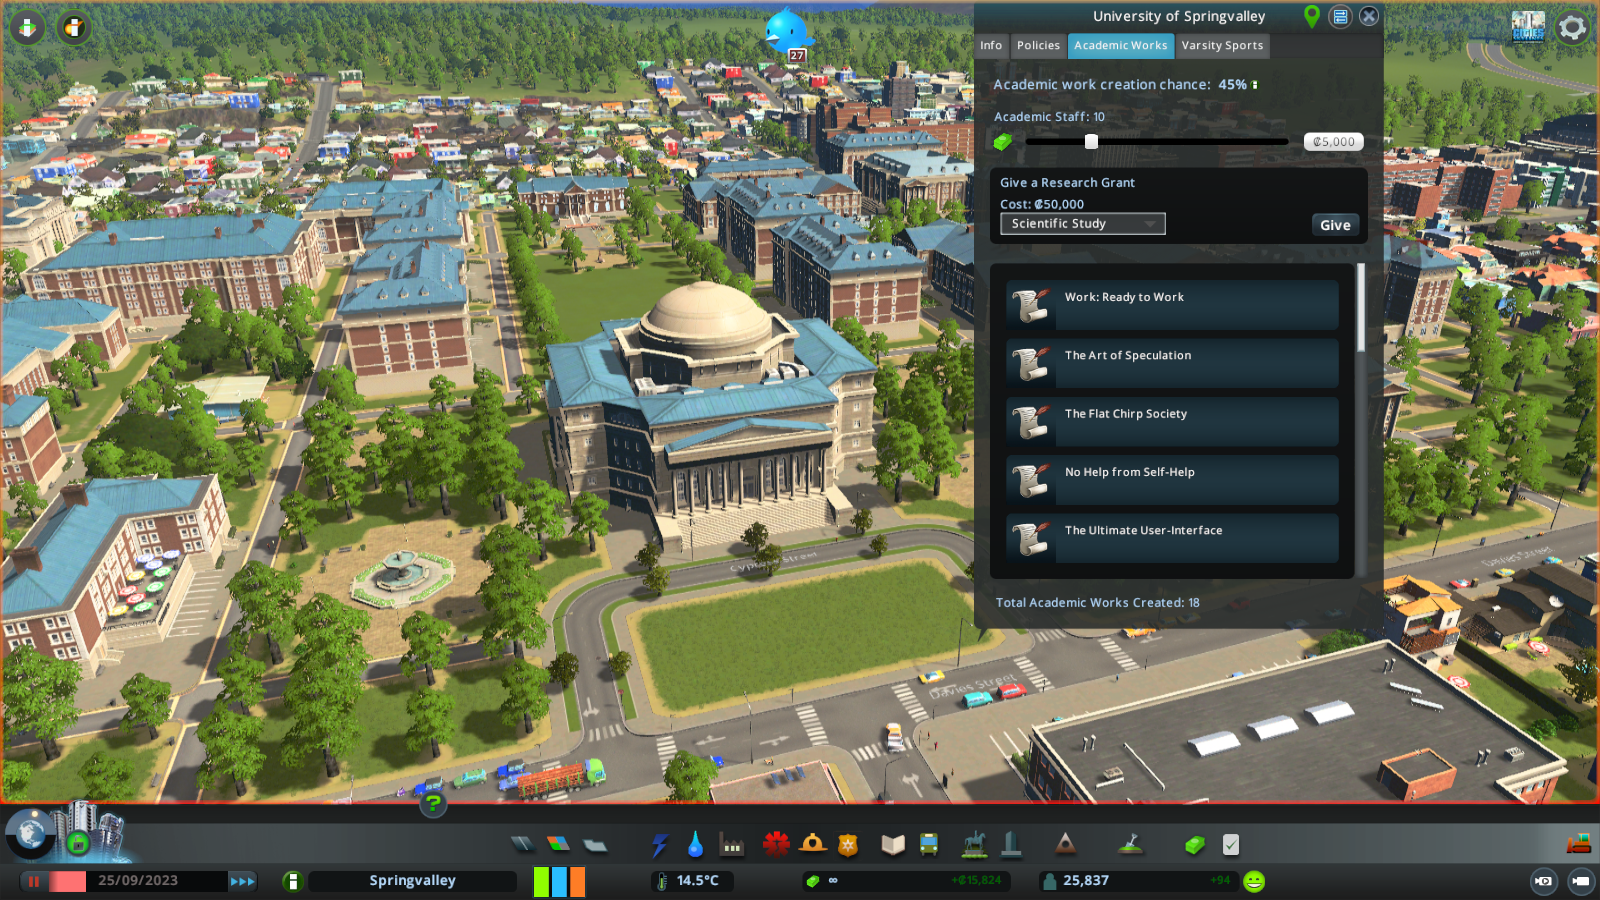 dev_diary_02_academic_works_campus_info_v2.png